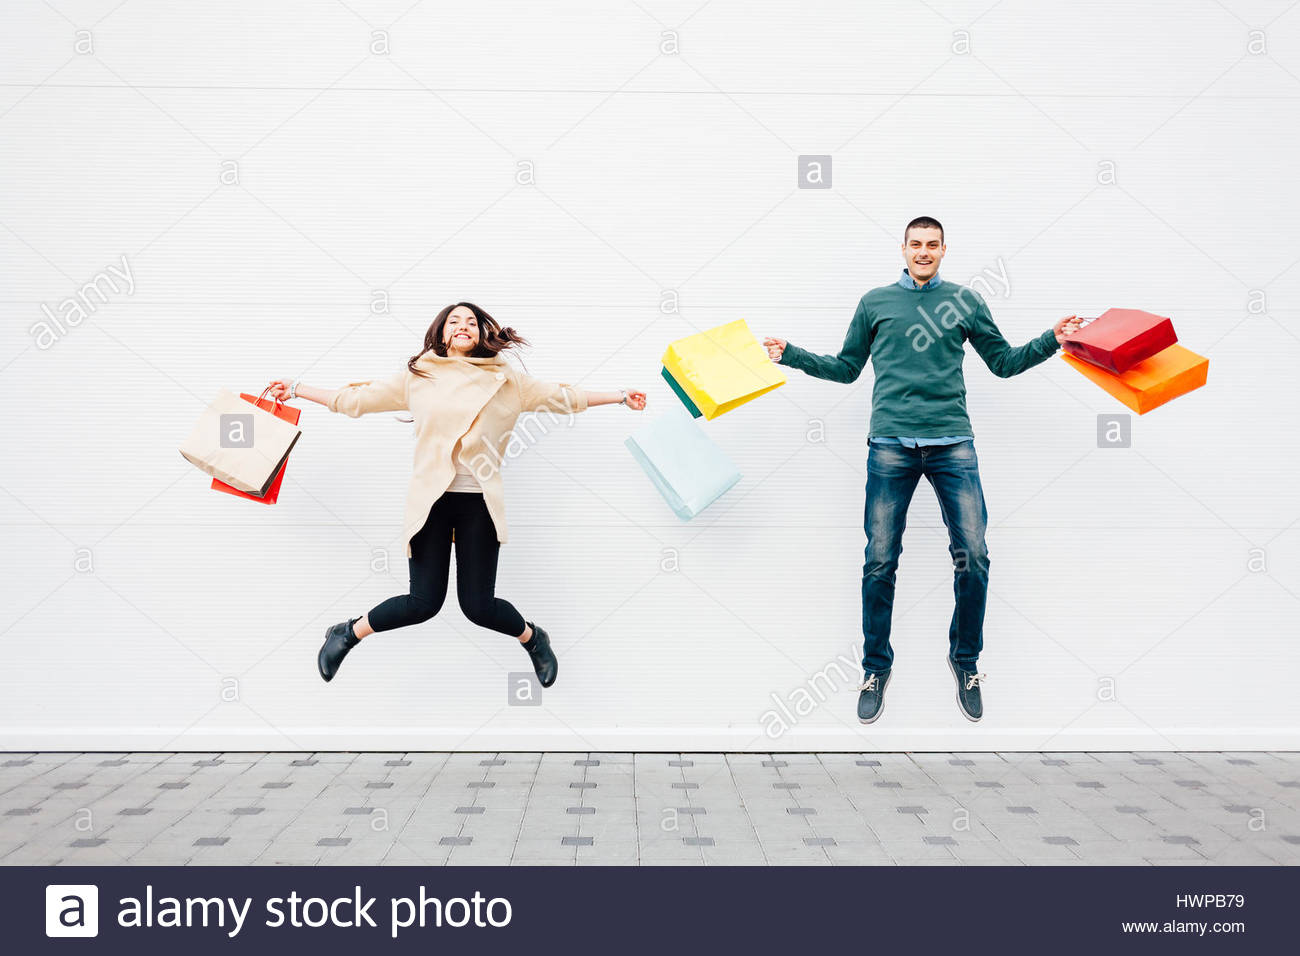 Excited young woman and man jumping with shopping bags - Stock Image